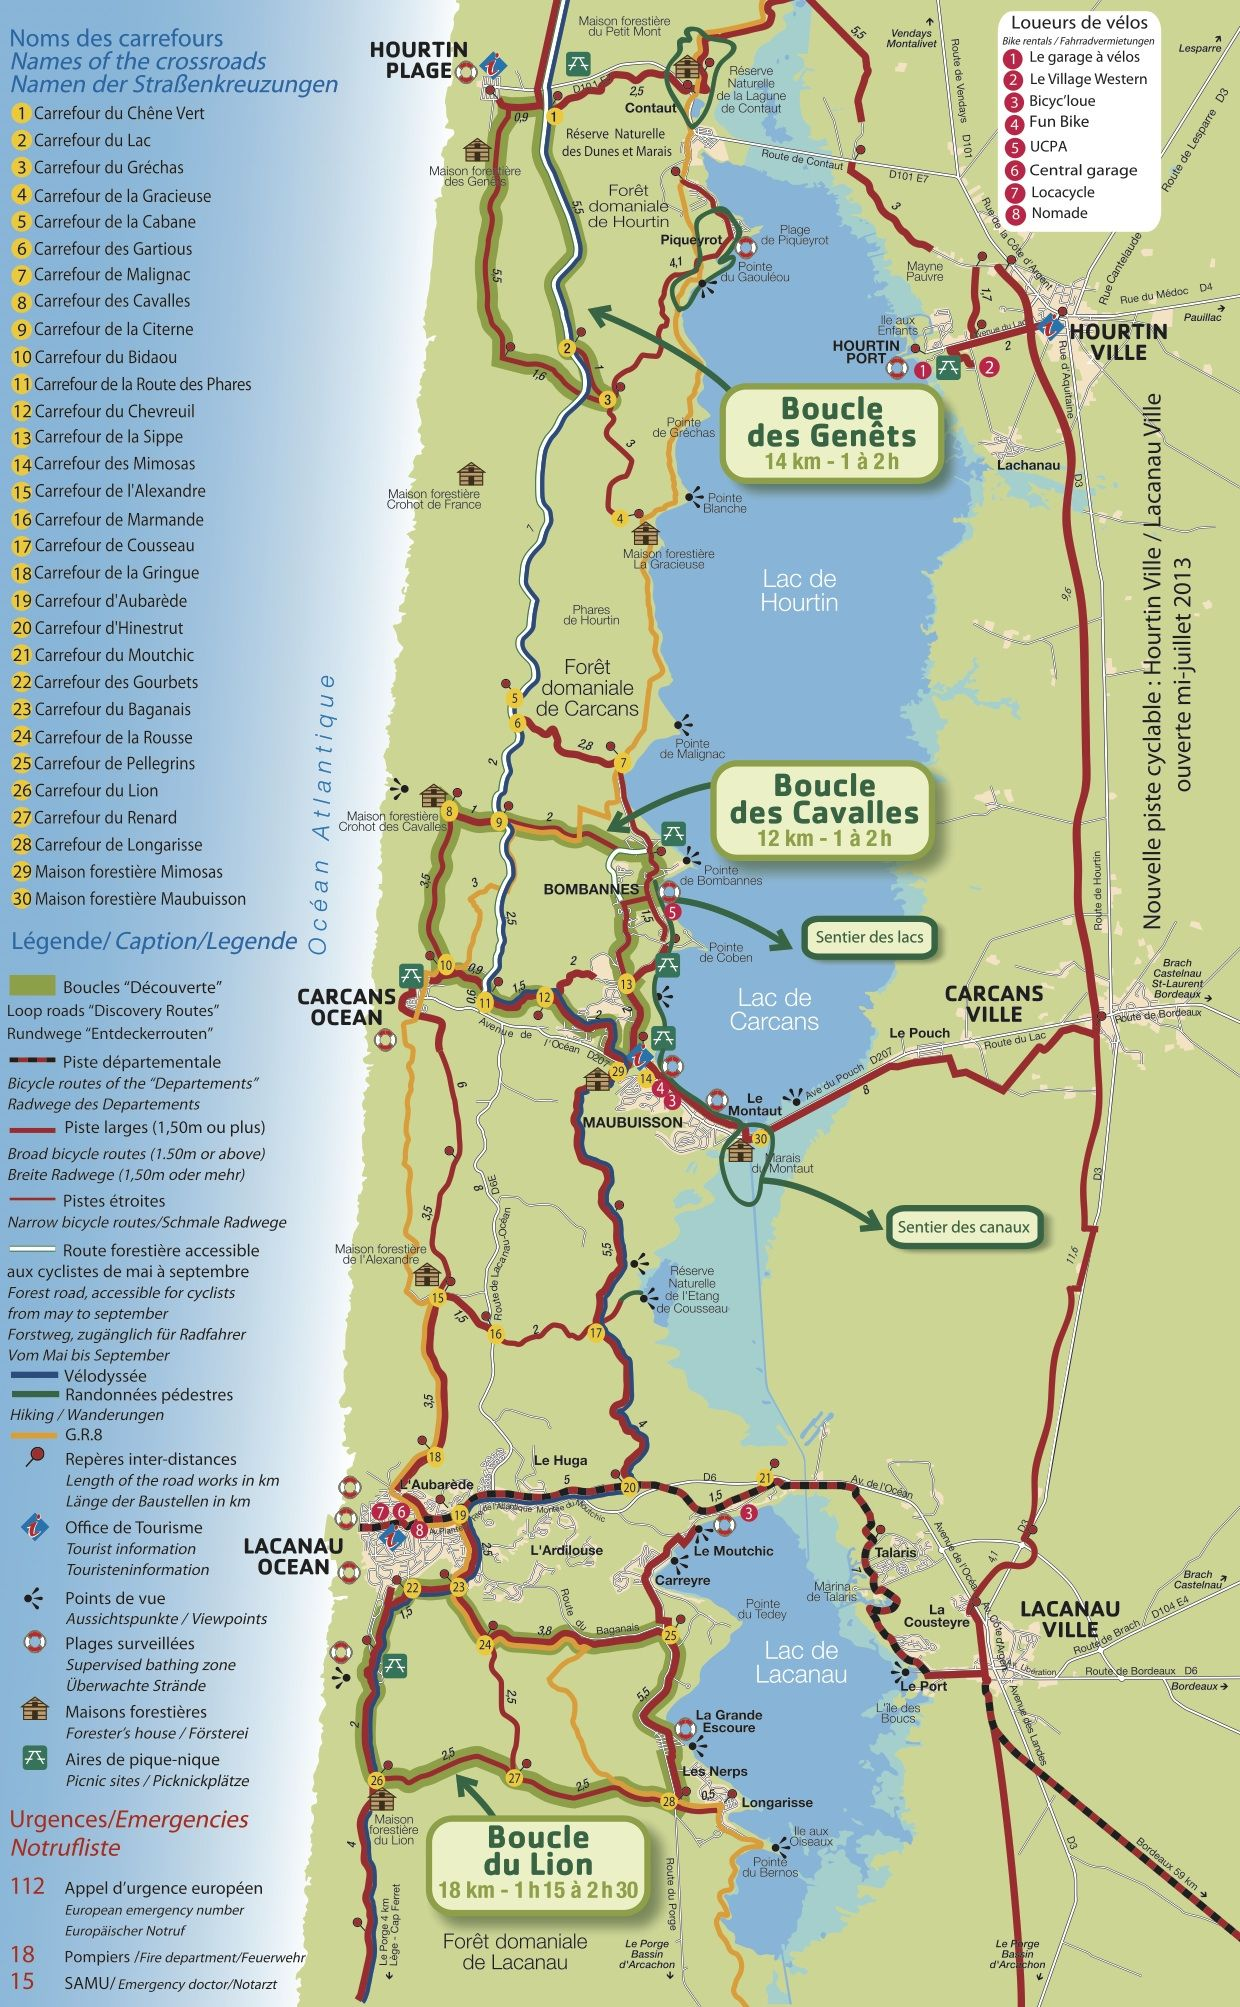 Bike route map of Lacanau France Getaways Pinterest